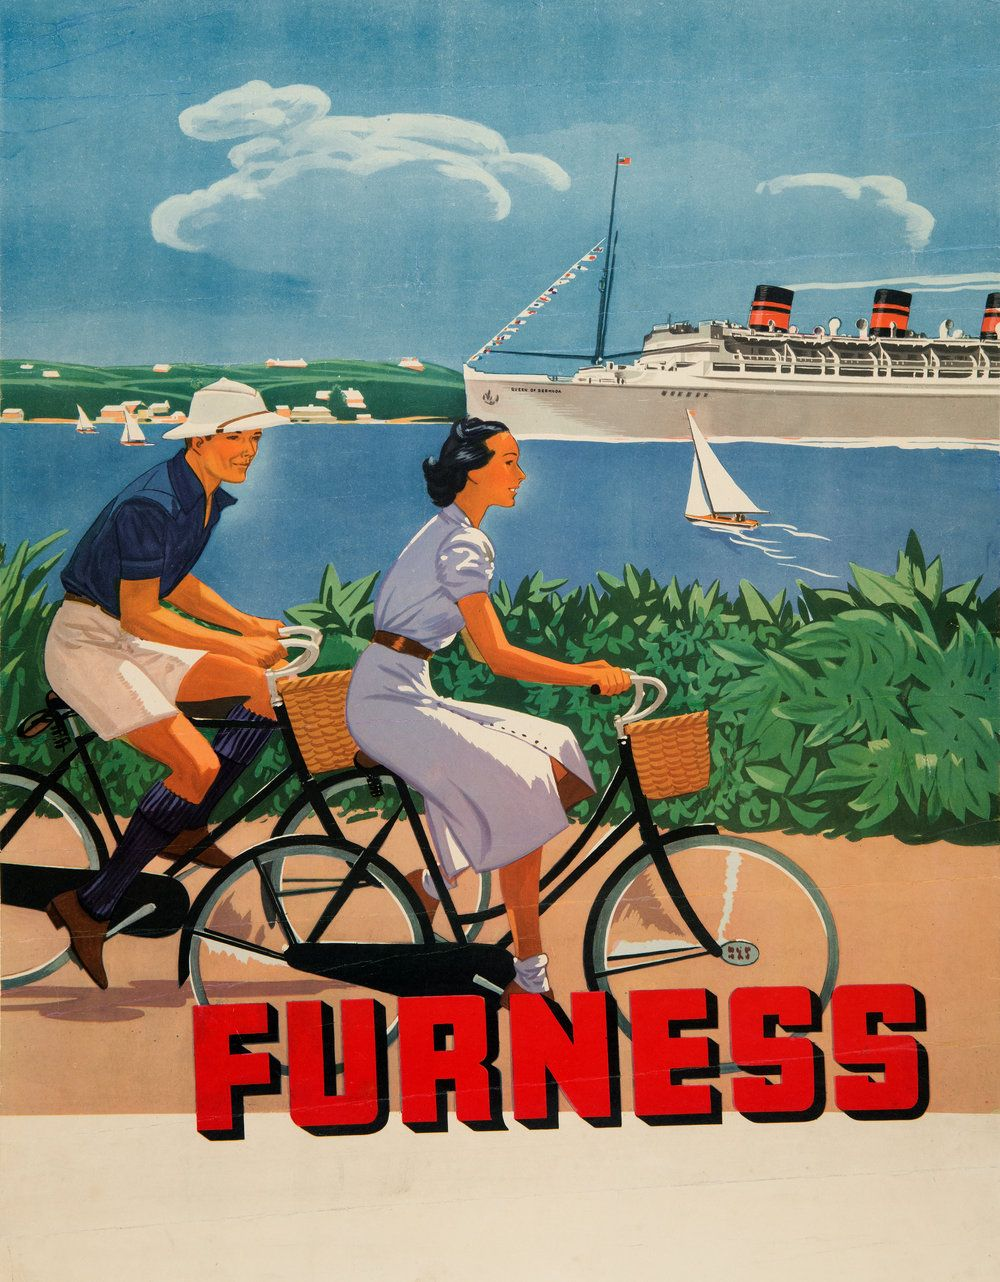 Vintage Travel Poster Showing The Queen Of Bermuda Cruise Ship - Queen of bermuda cruise ship